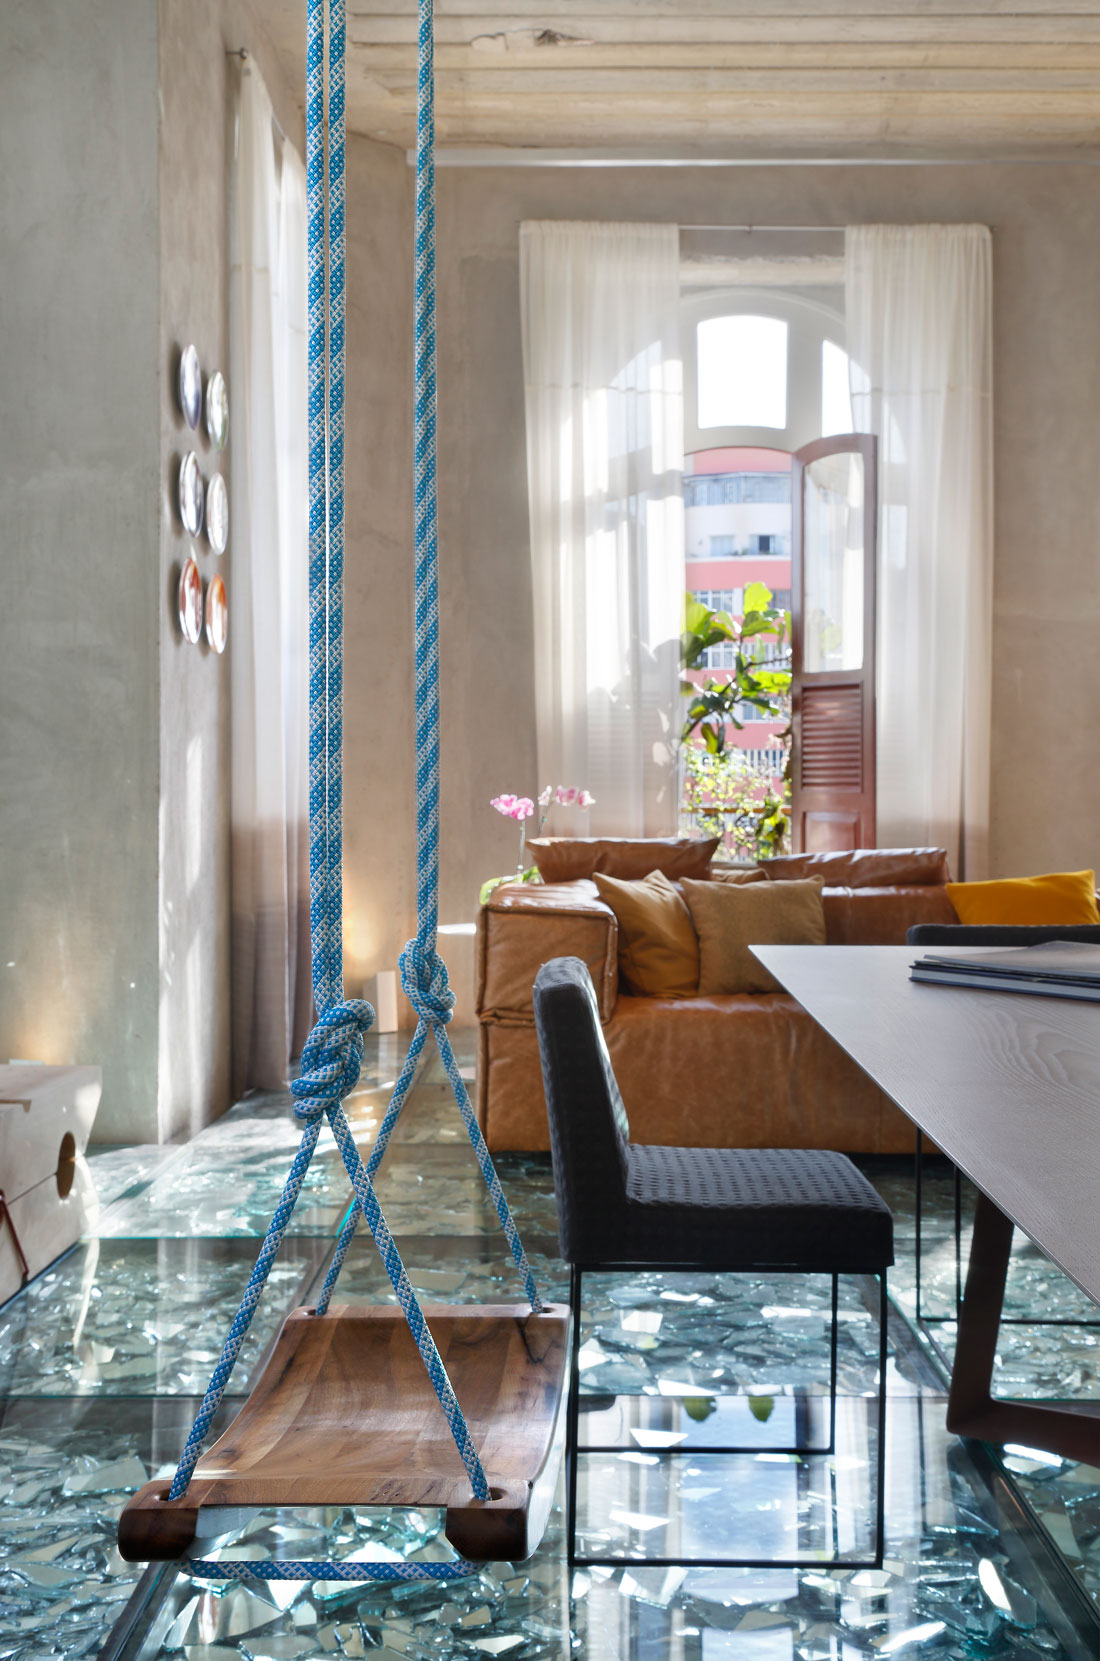 Stylish and Eclectic Design with Broken Glass Floor of Lab LZ for Casa Cor Rio 2015 by Giselle Taranto Architecture-26